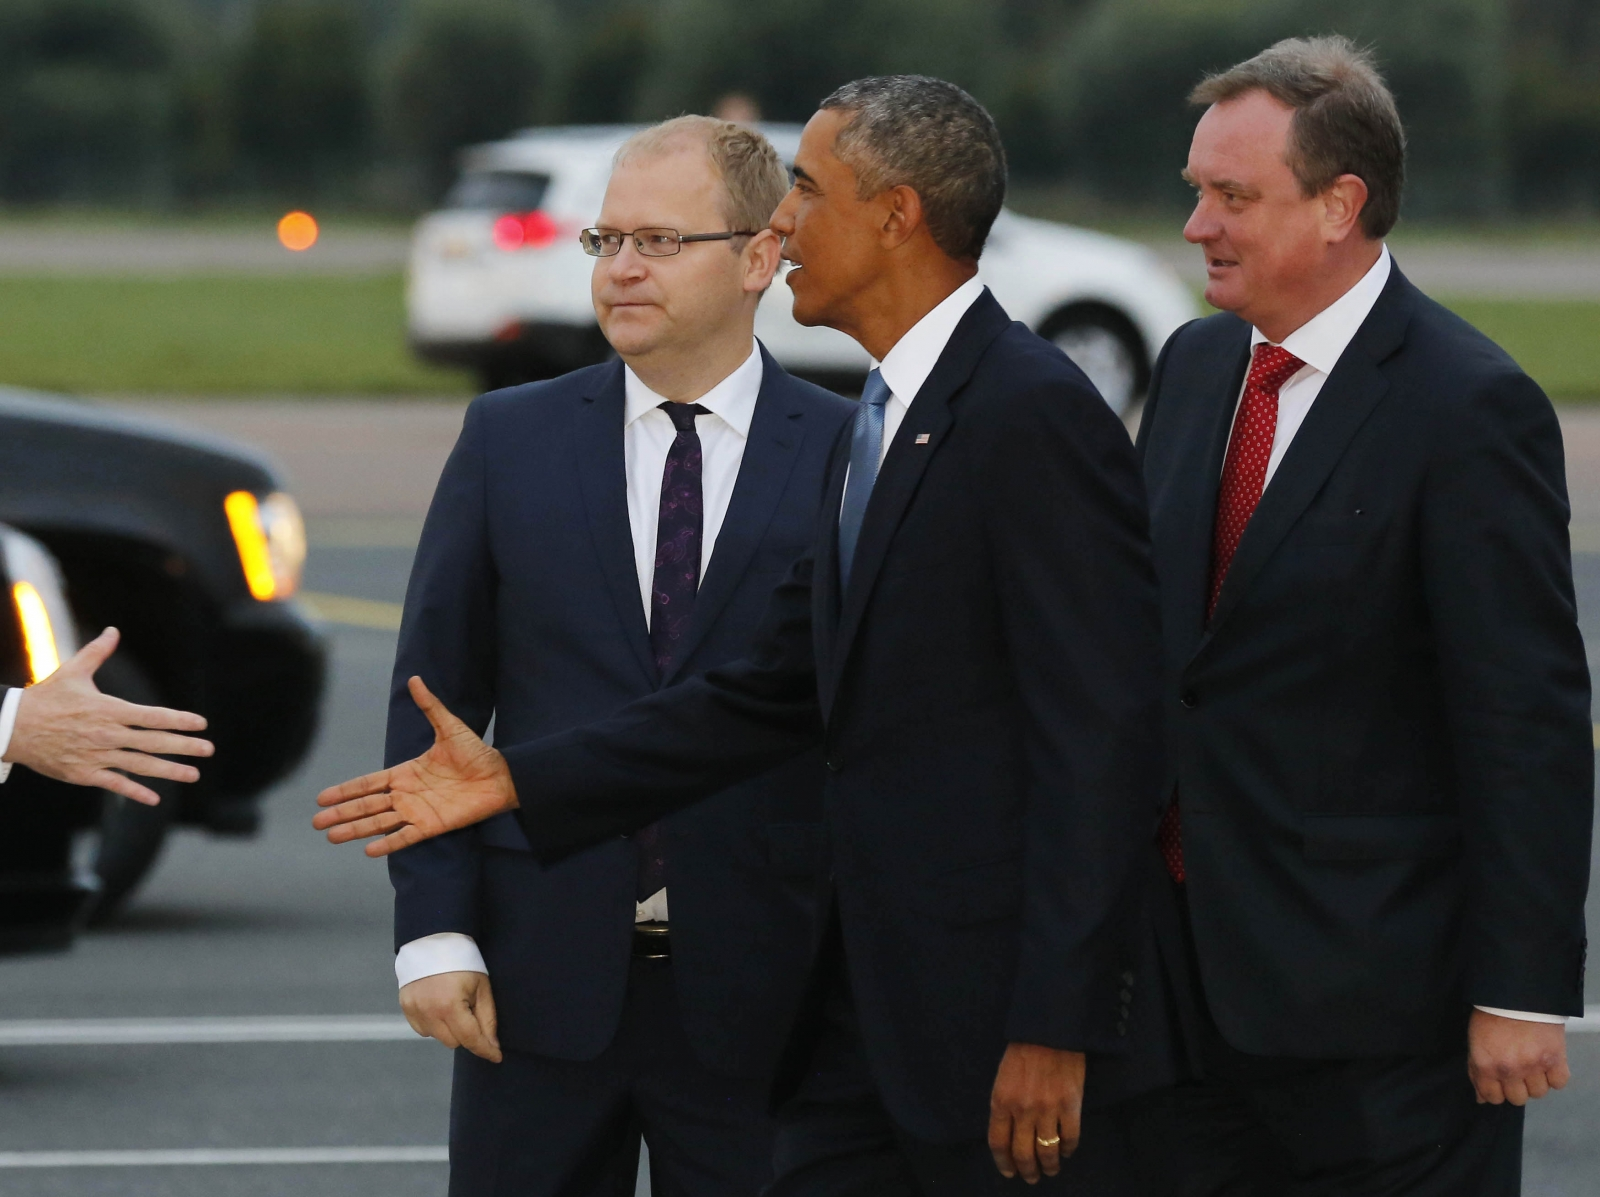 .S. President Barack Obama is greeted by Estonia Foreign Minister Urmas Paet (L) and Chief of Protocol Toomas Kahur (R)